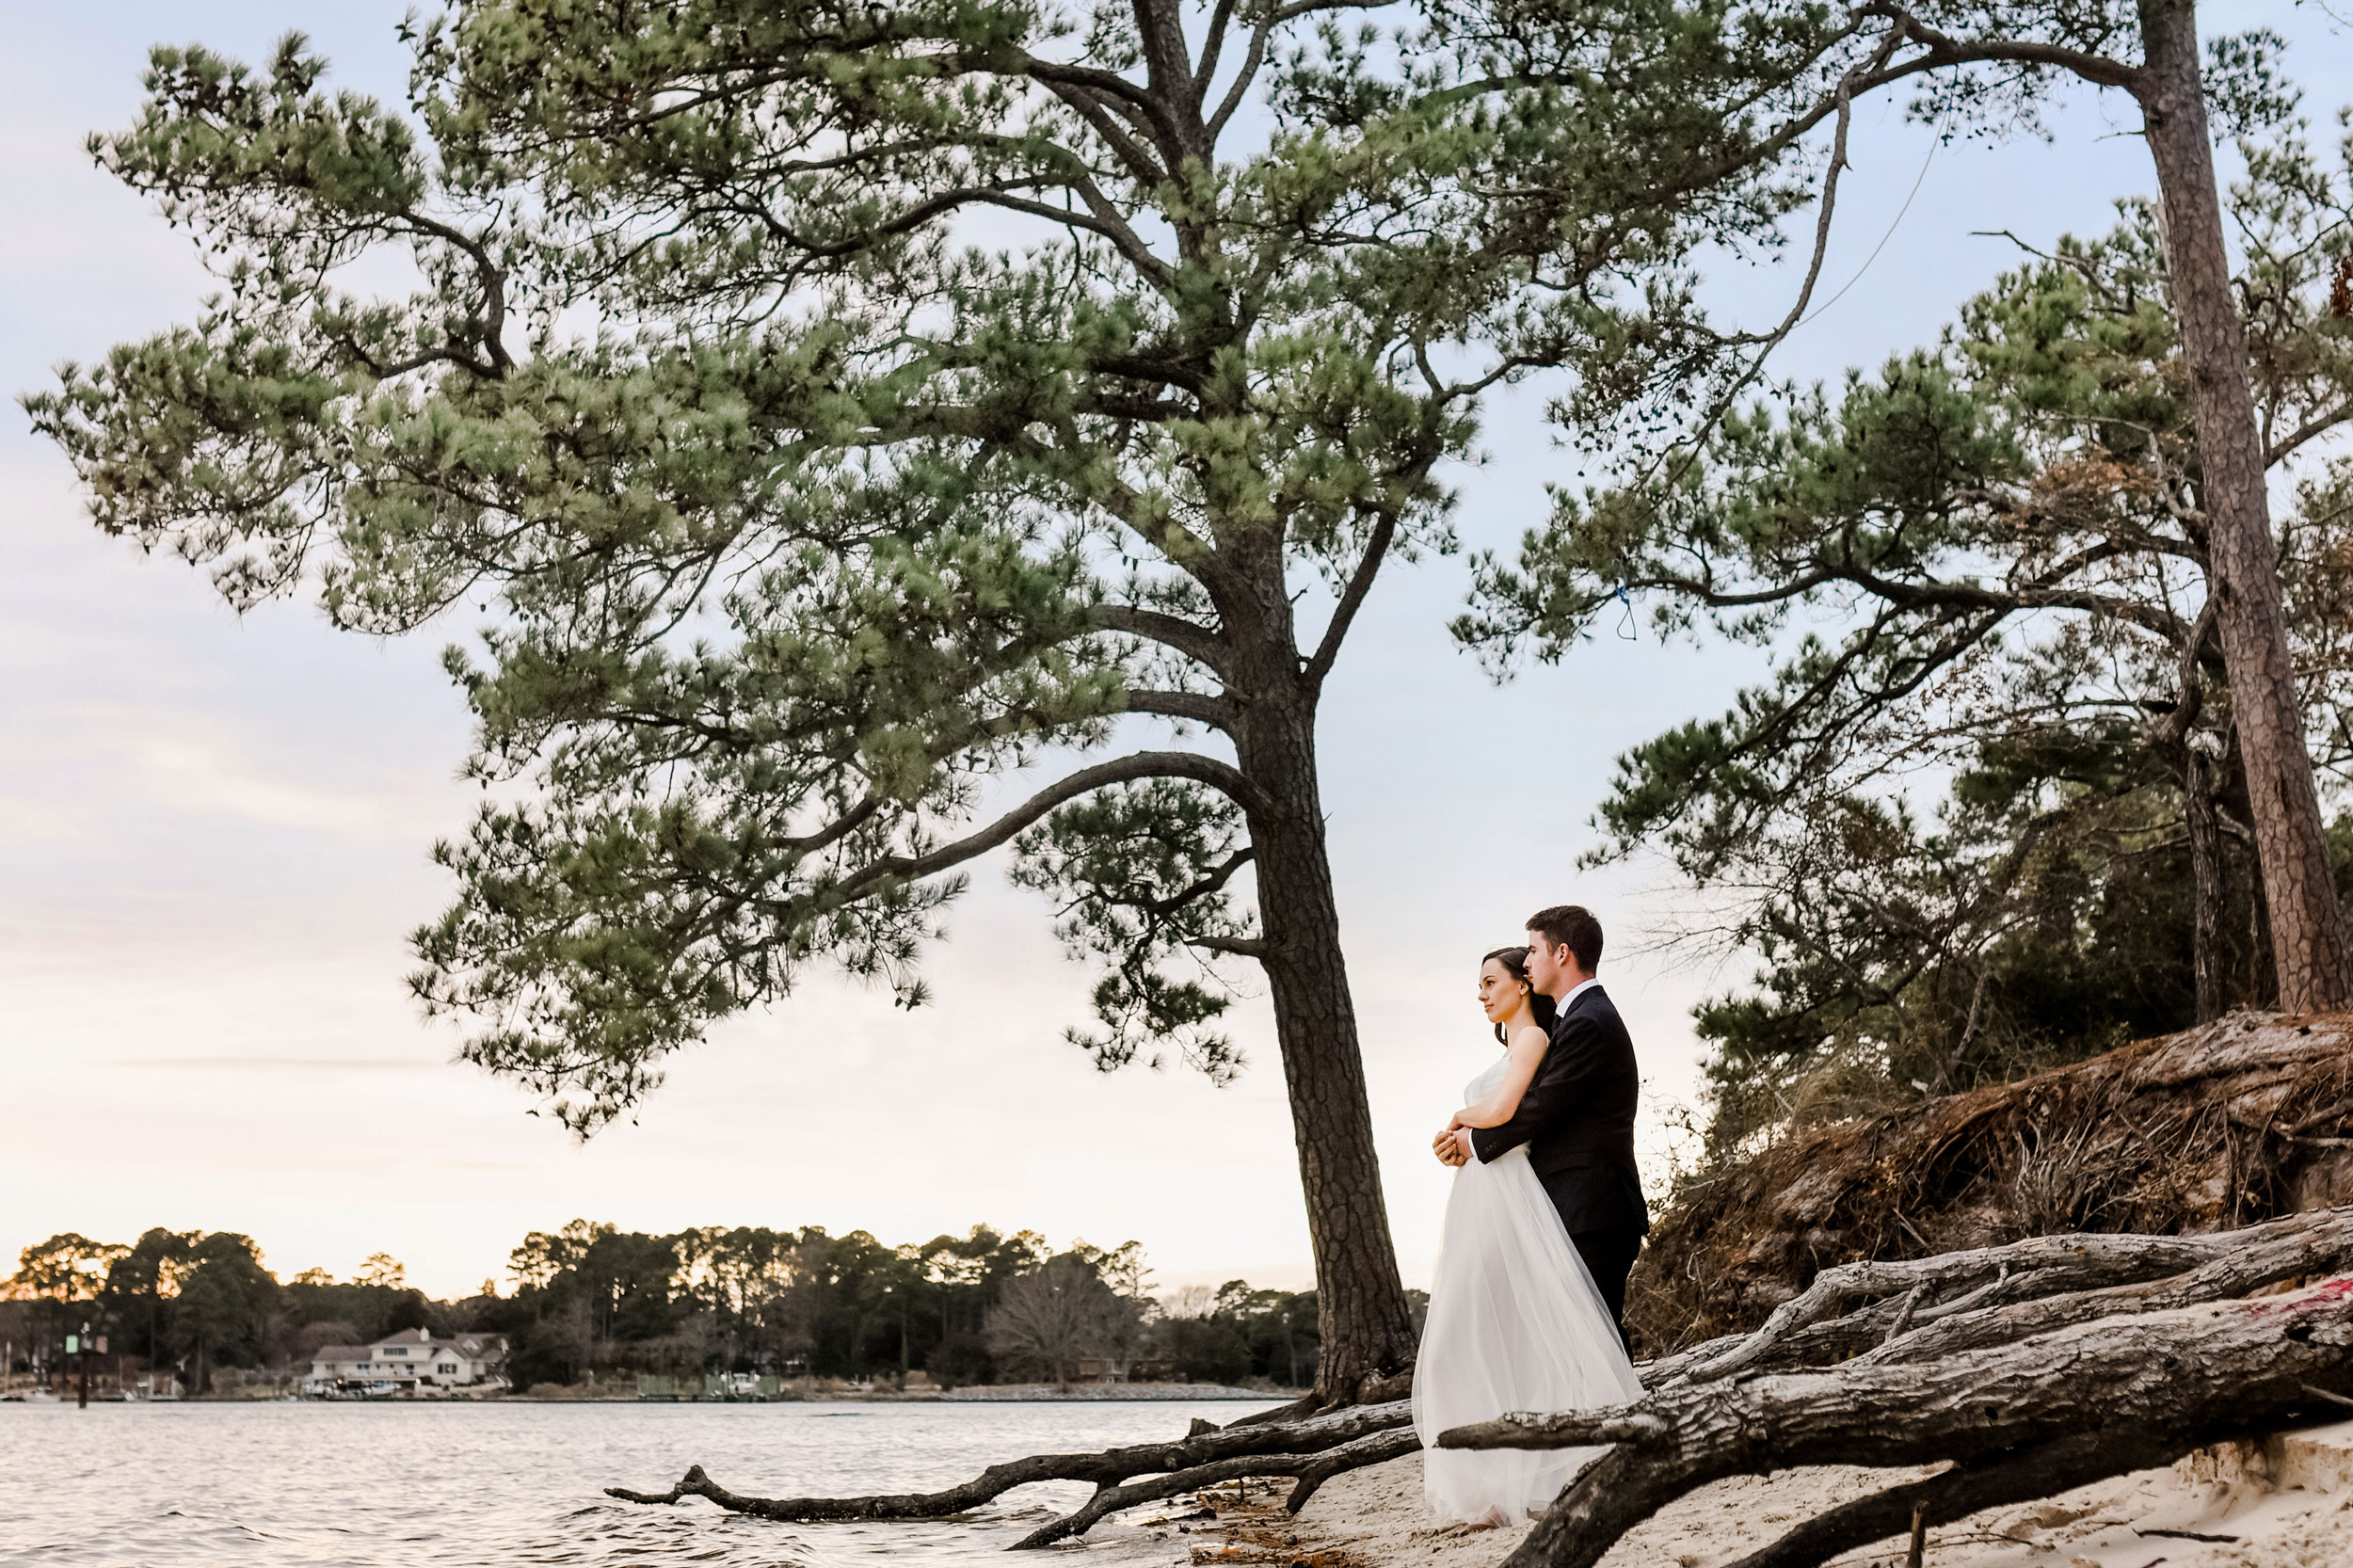 elopement-photographer-virginia-beach-wedding-melissa-bliss-photography.jpg